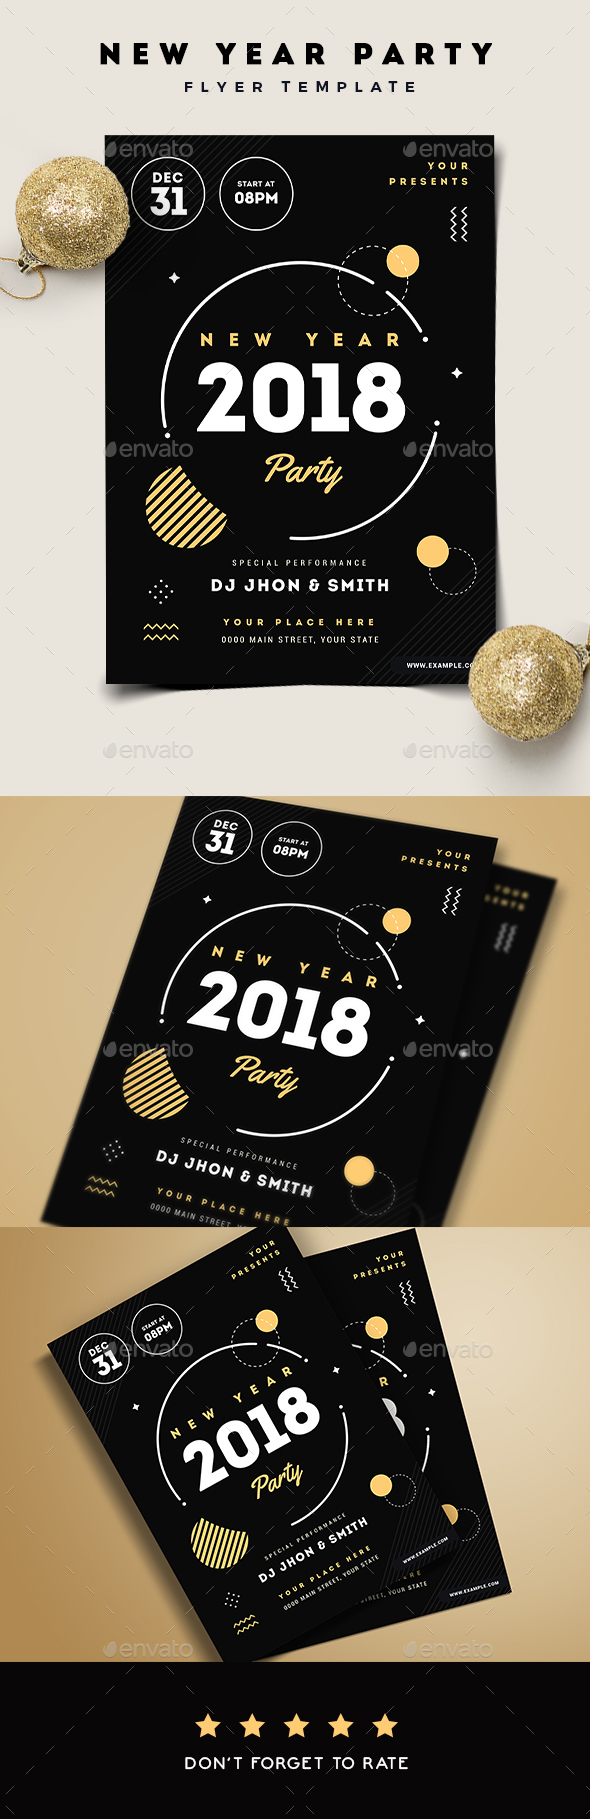 New Year Party Flyer - New Year Greeting Cards